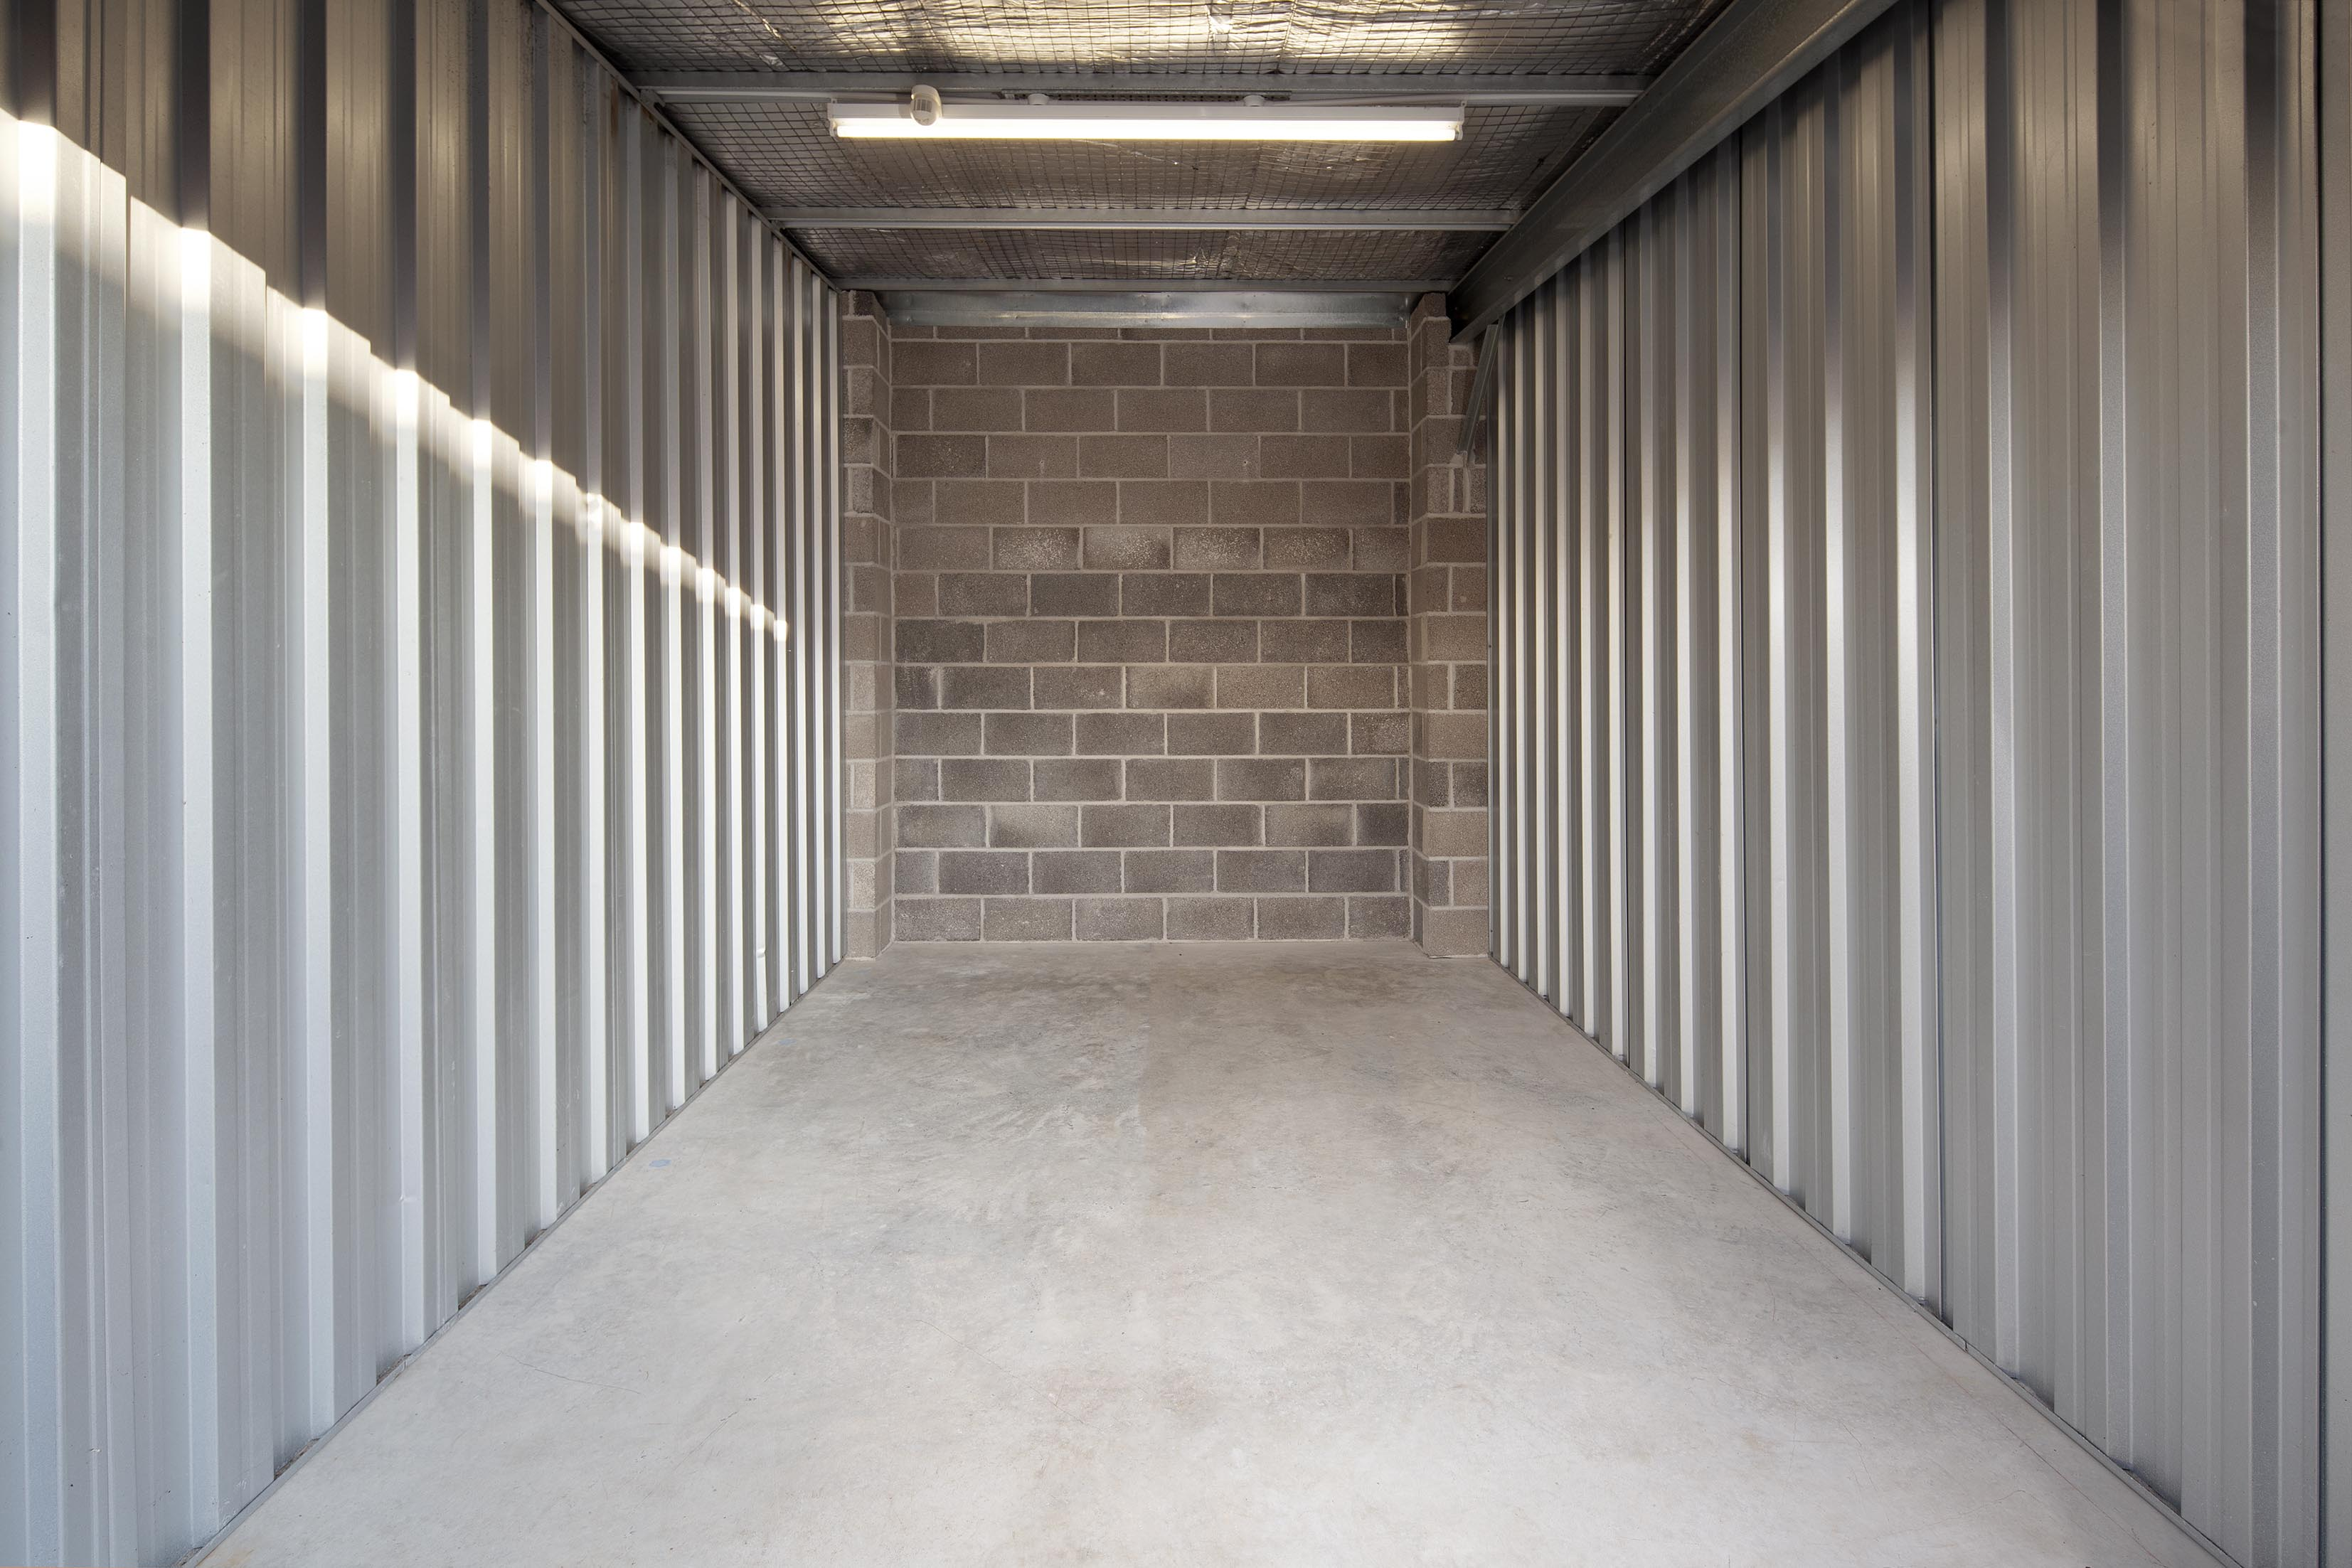 140 ft empty storage unit